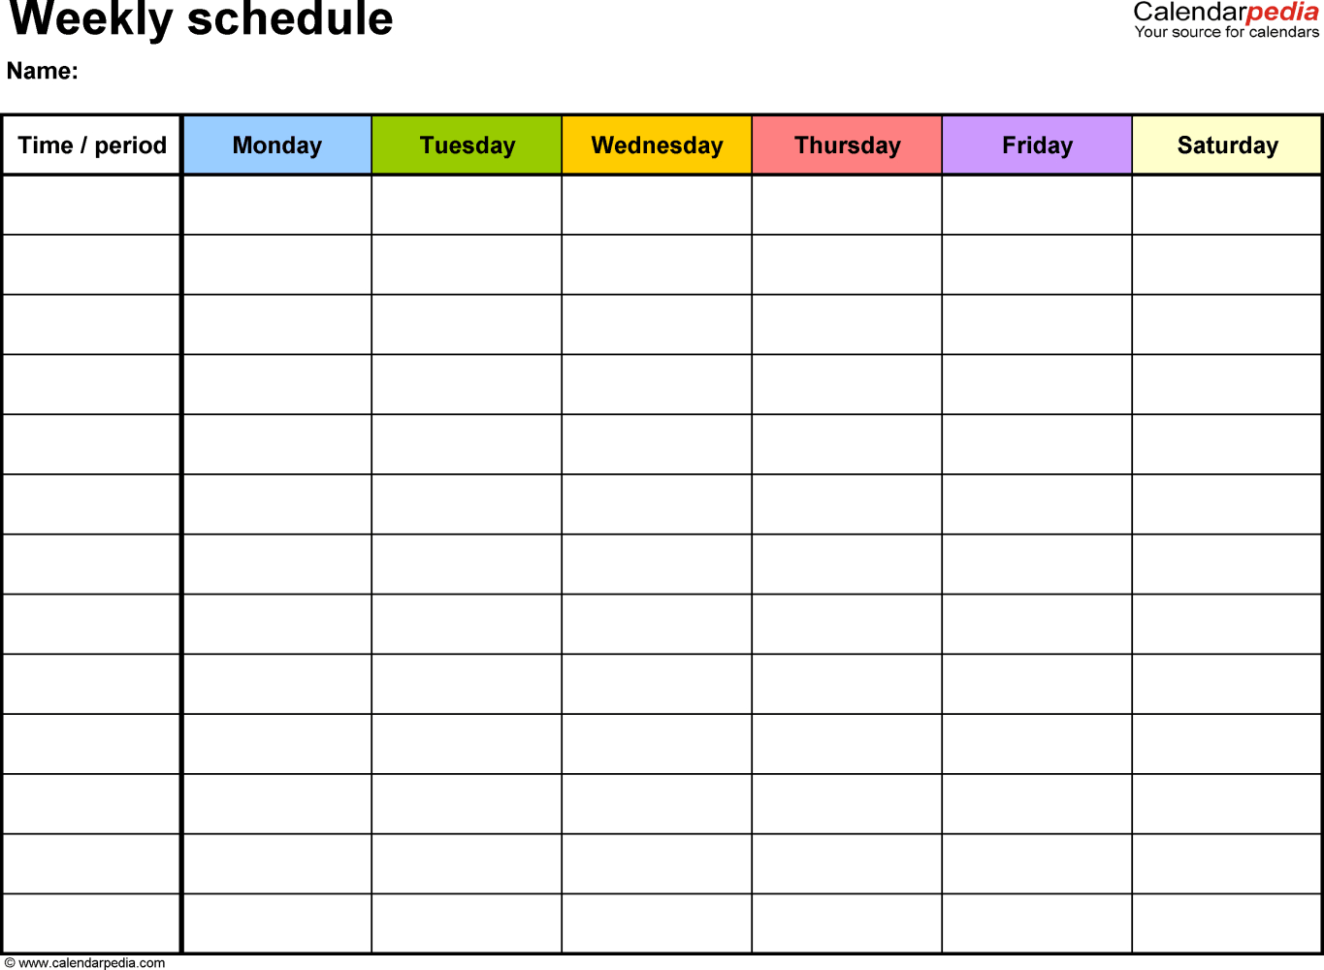 Medication Spreadsheet Organizer Throughout Free Weekly Schedule Templates For Excel  18 Templates